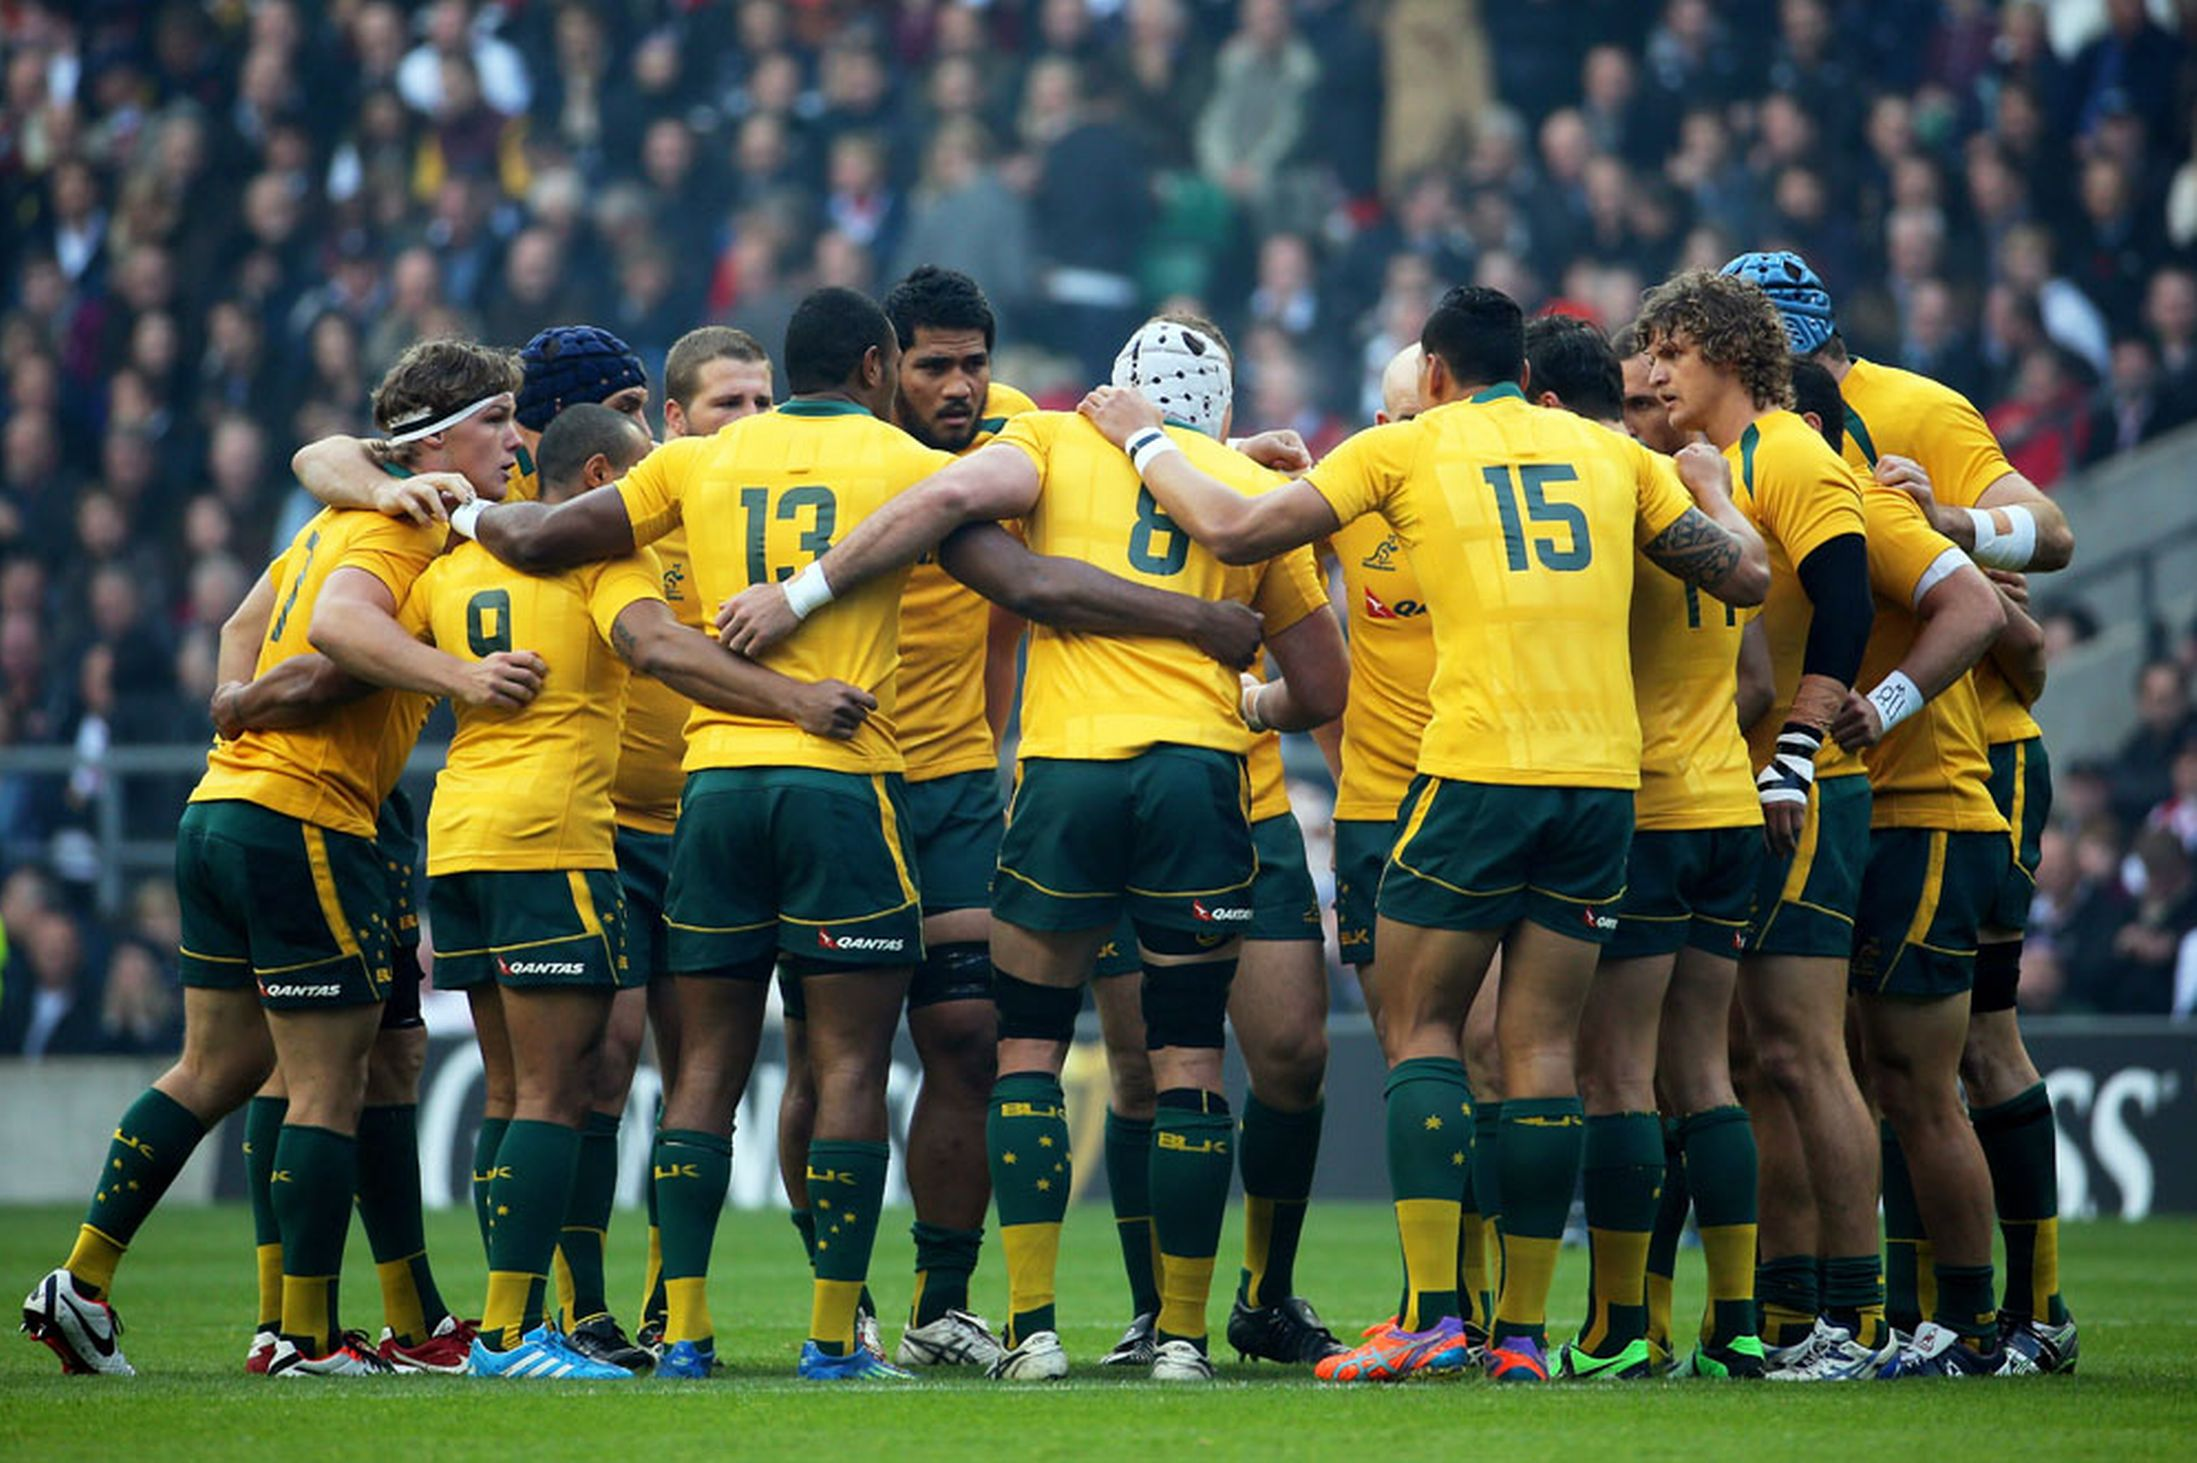 Australian Wallabies Team